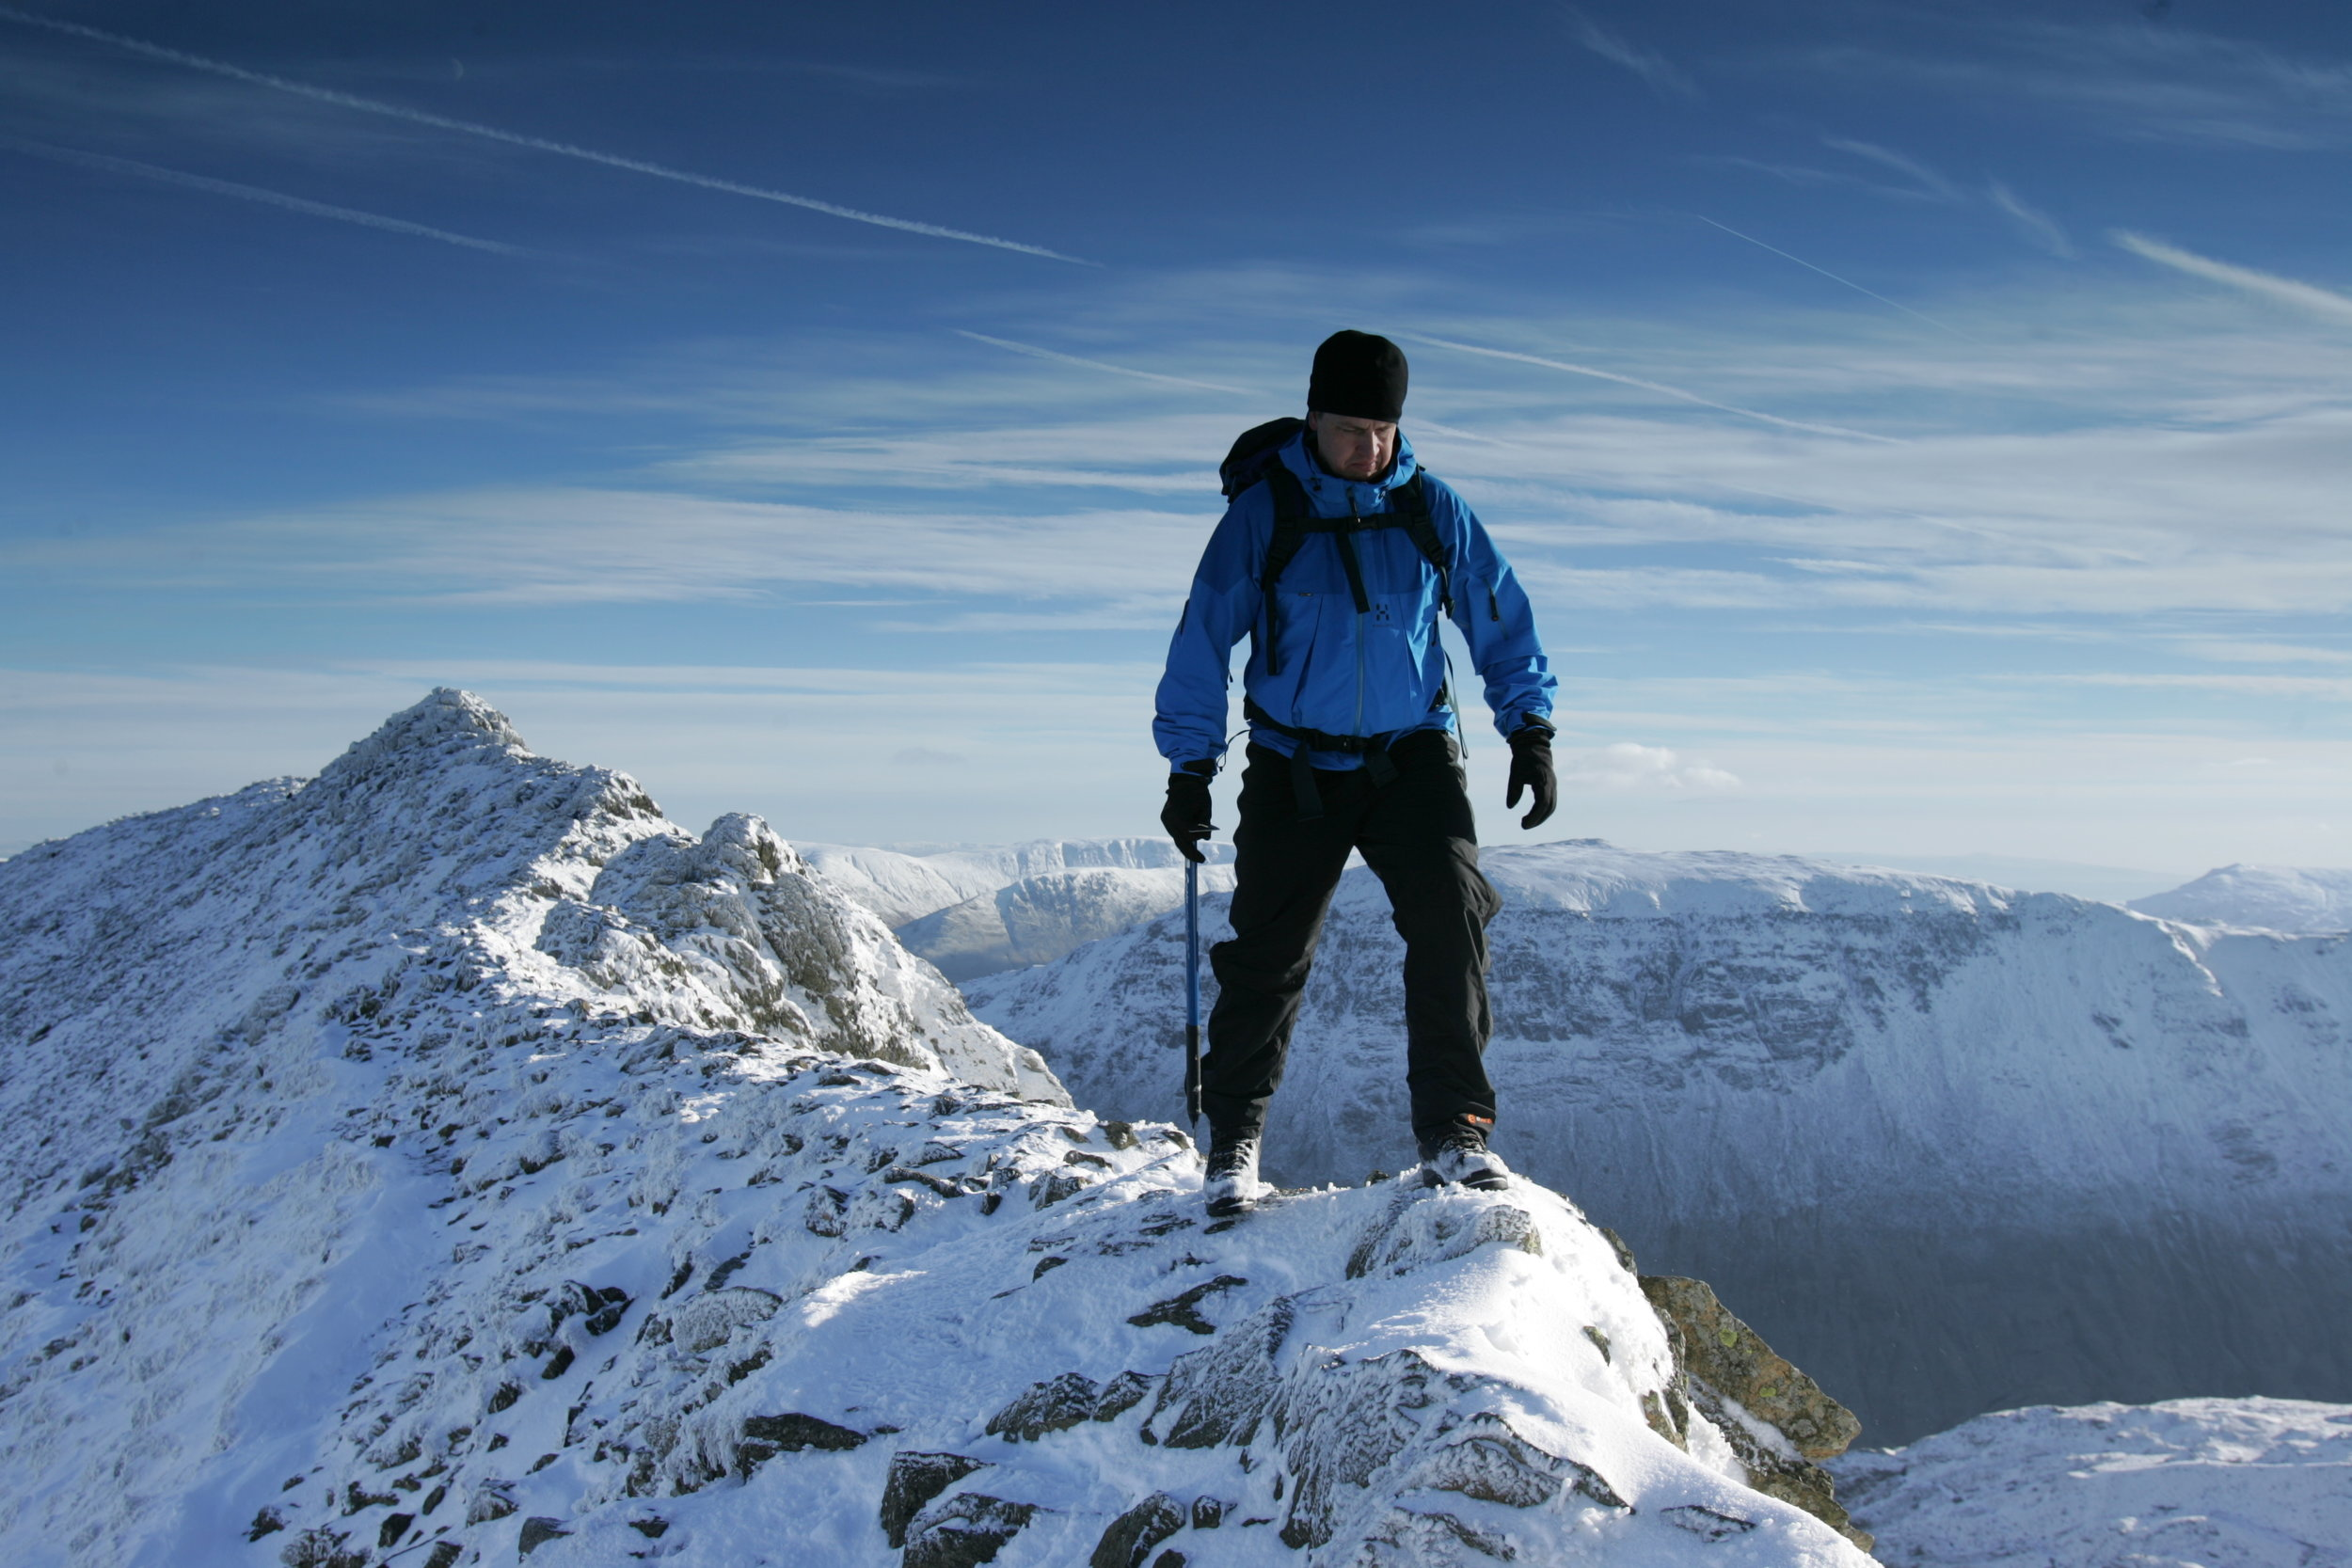 Winter is not the time for Striding Edge, unless you know how to handle an ice axe and crampons. Picture: Tom Bailey, Trail Magazine